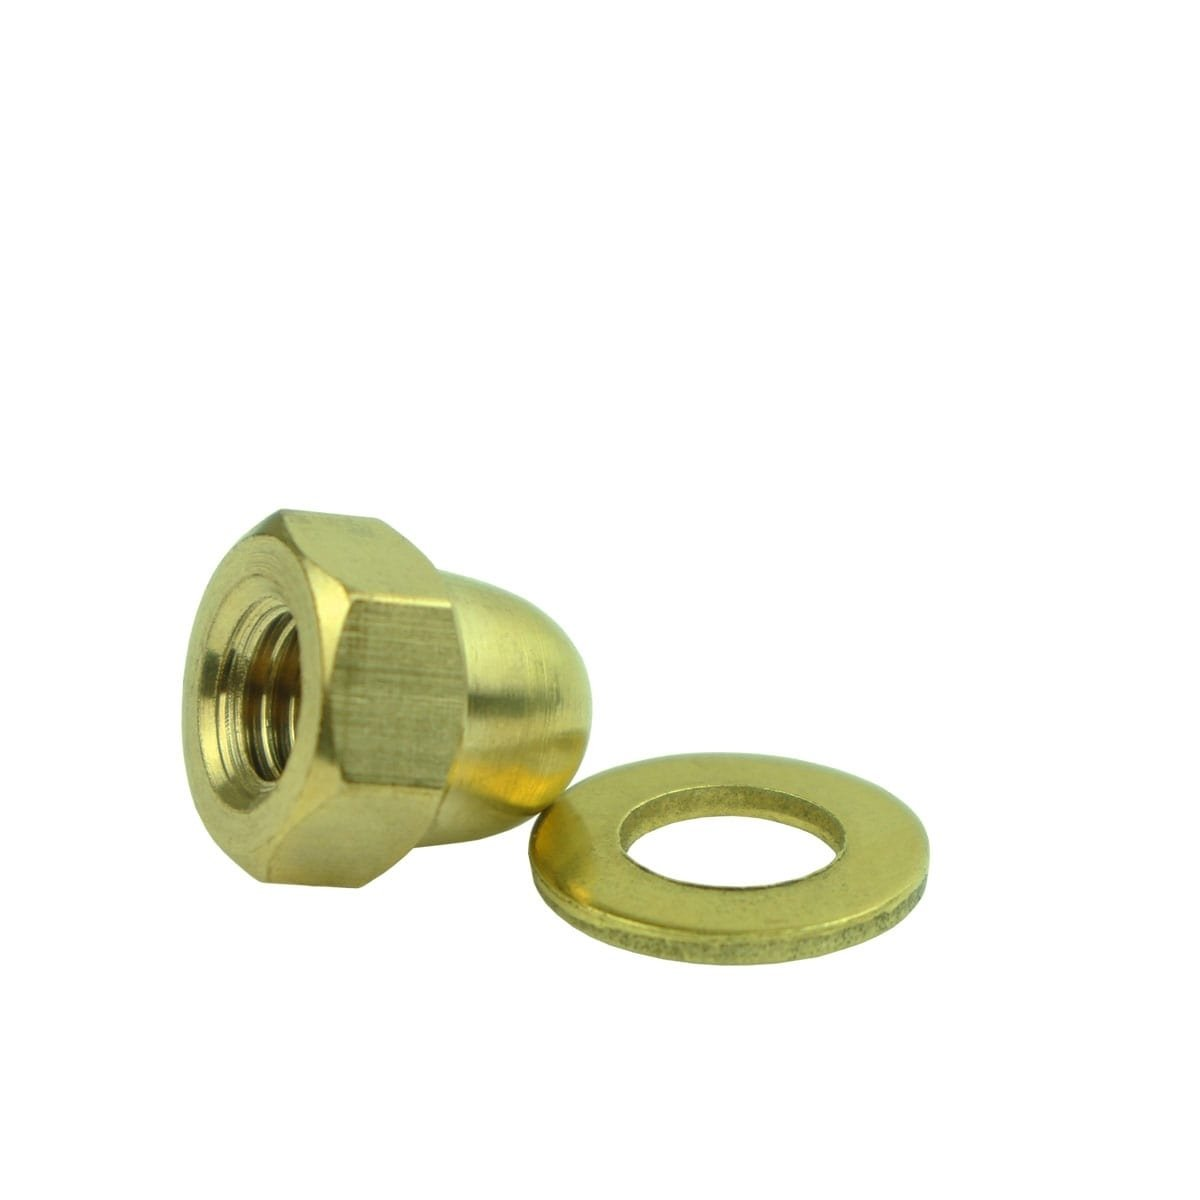 Garden Decoration Mounting Material Nut caps with ring M12 brass - 10-pieces